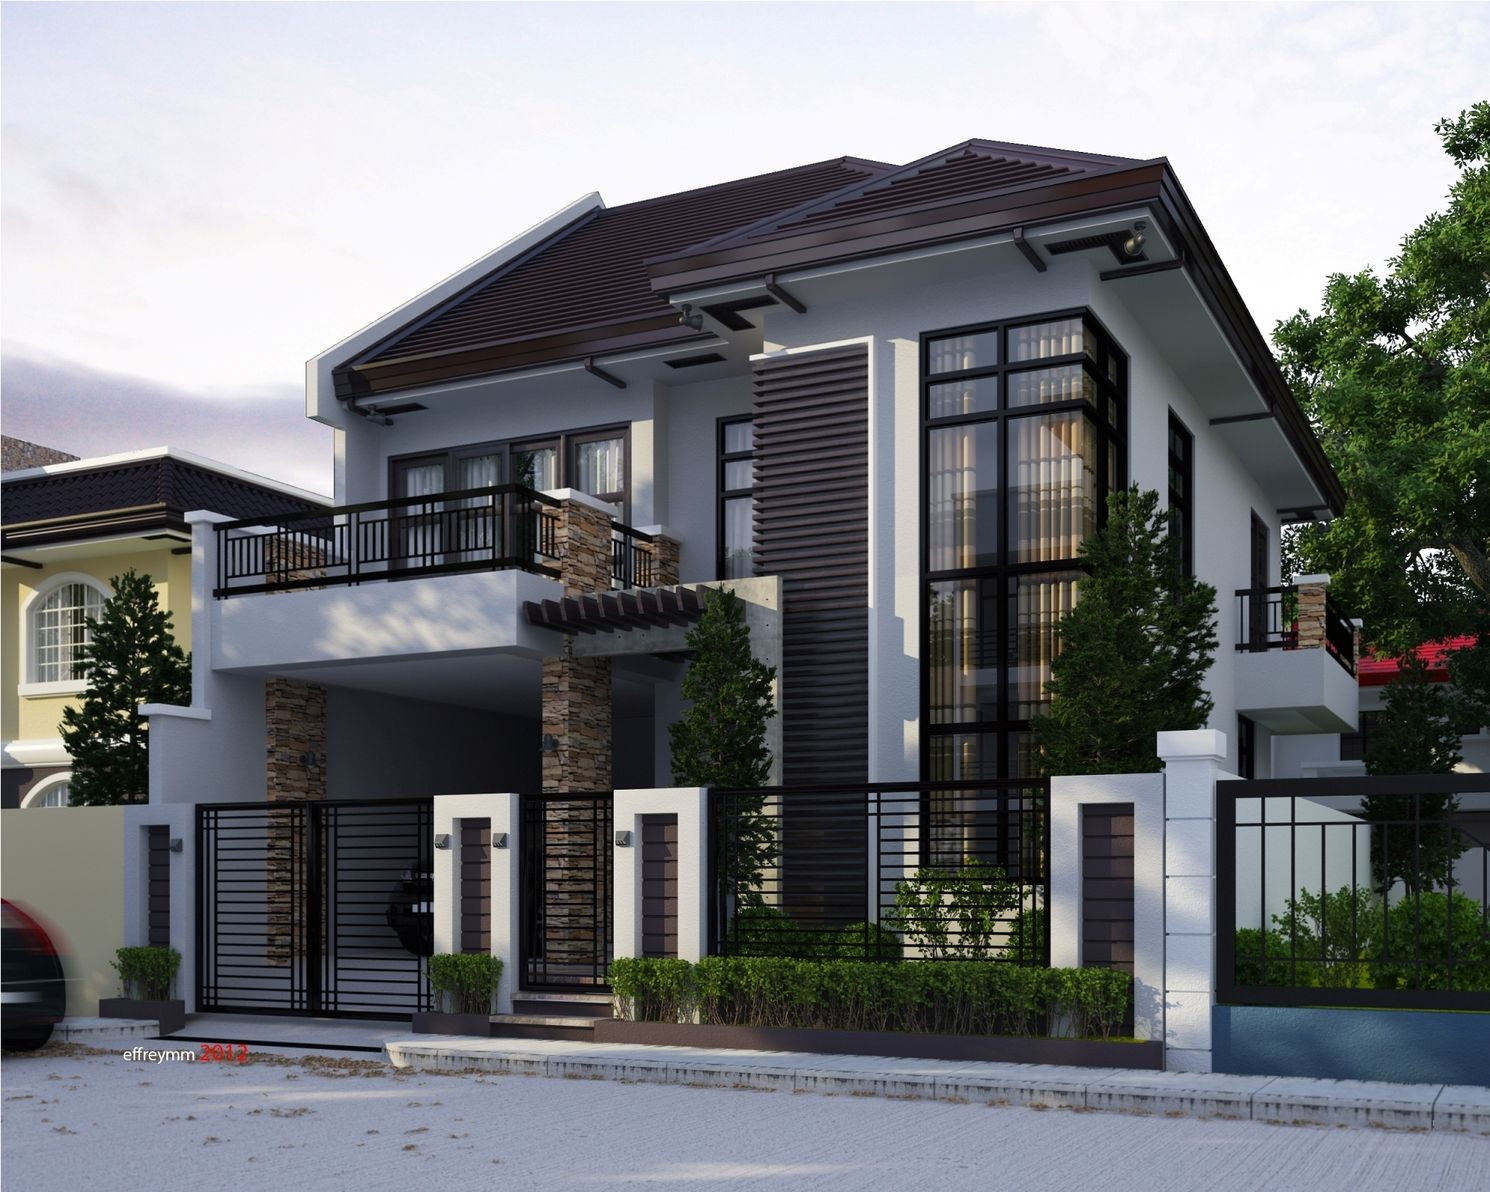 3af9eb2a3d52995a089018f1ccdb86f0 - Get Modern 3 Bedroom House Plans Philippines PNG